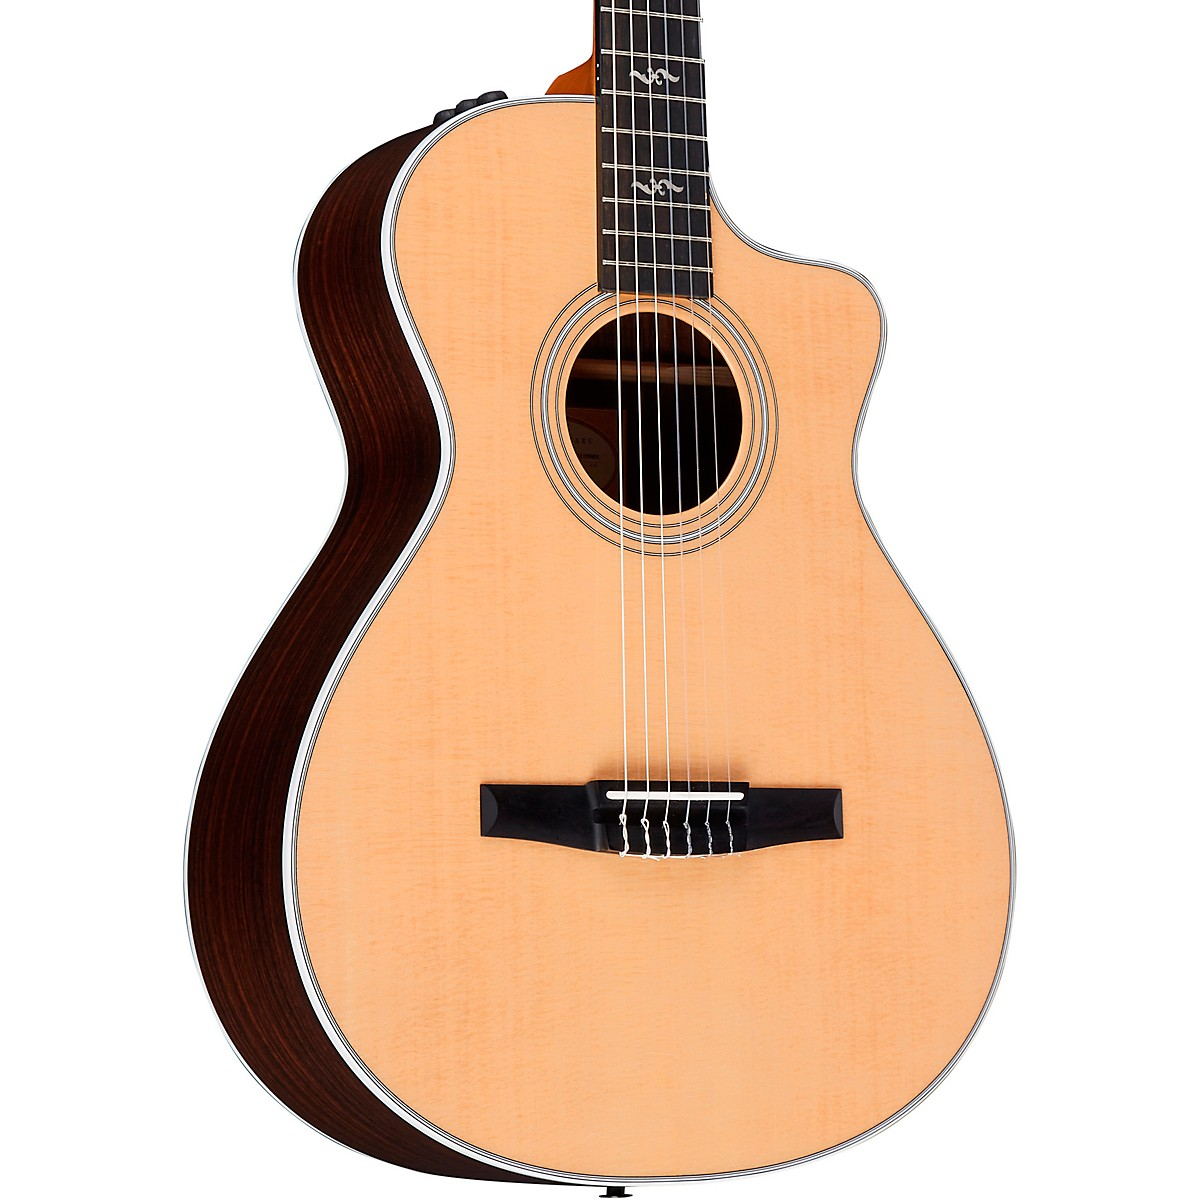 Taylor 412ce-N Rosewood Grand Concert Nylon String Acoustic-Electric Guitar